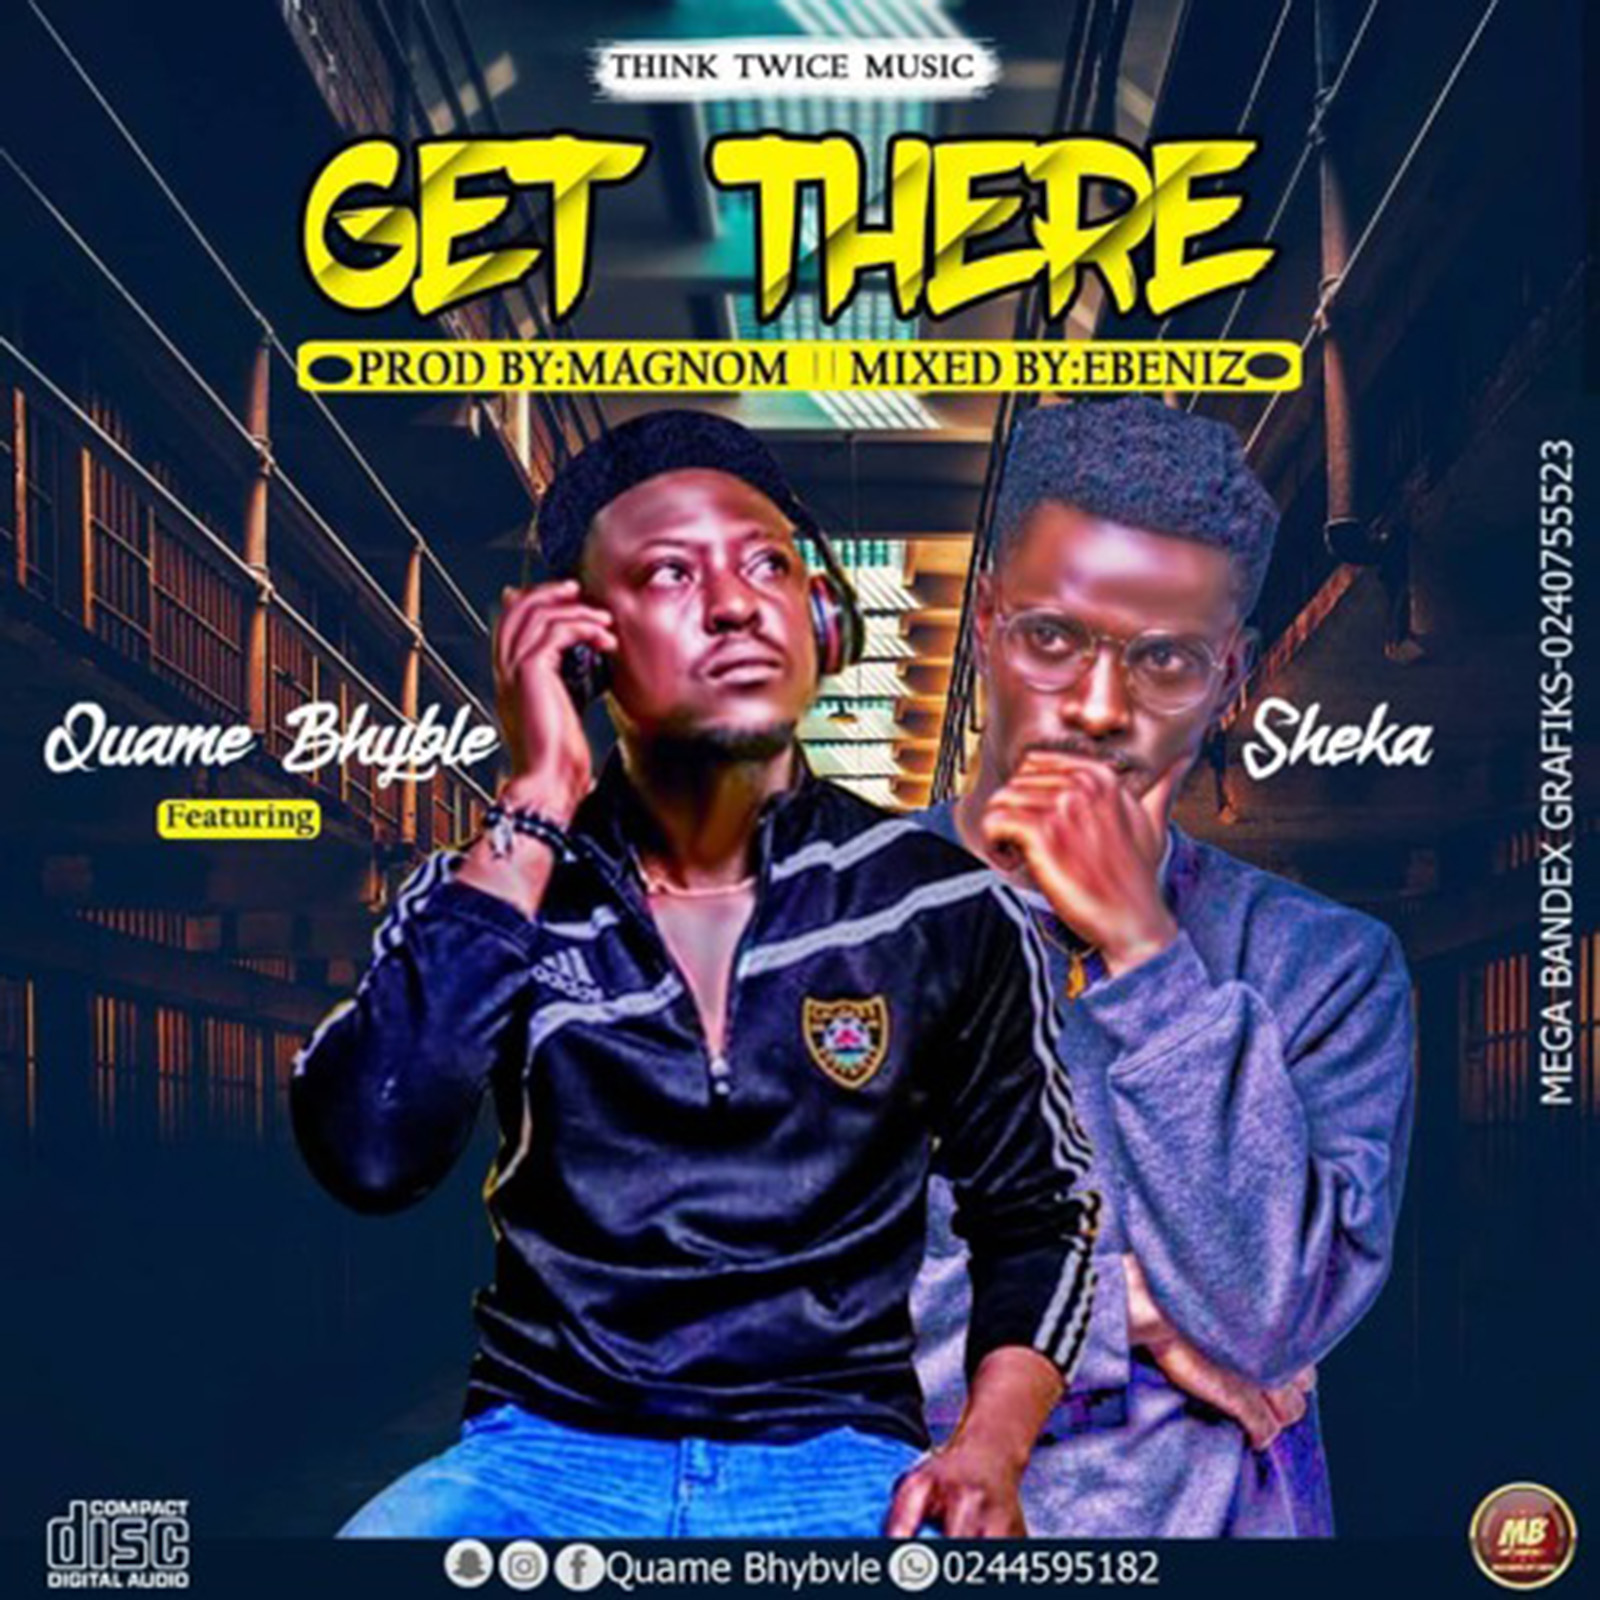 Get There by Quame Bhyble feat. Lil Shaker